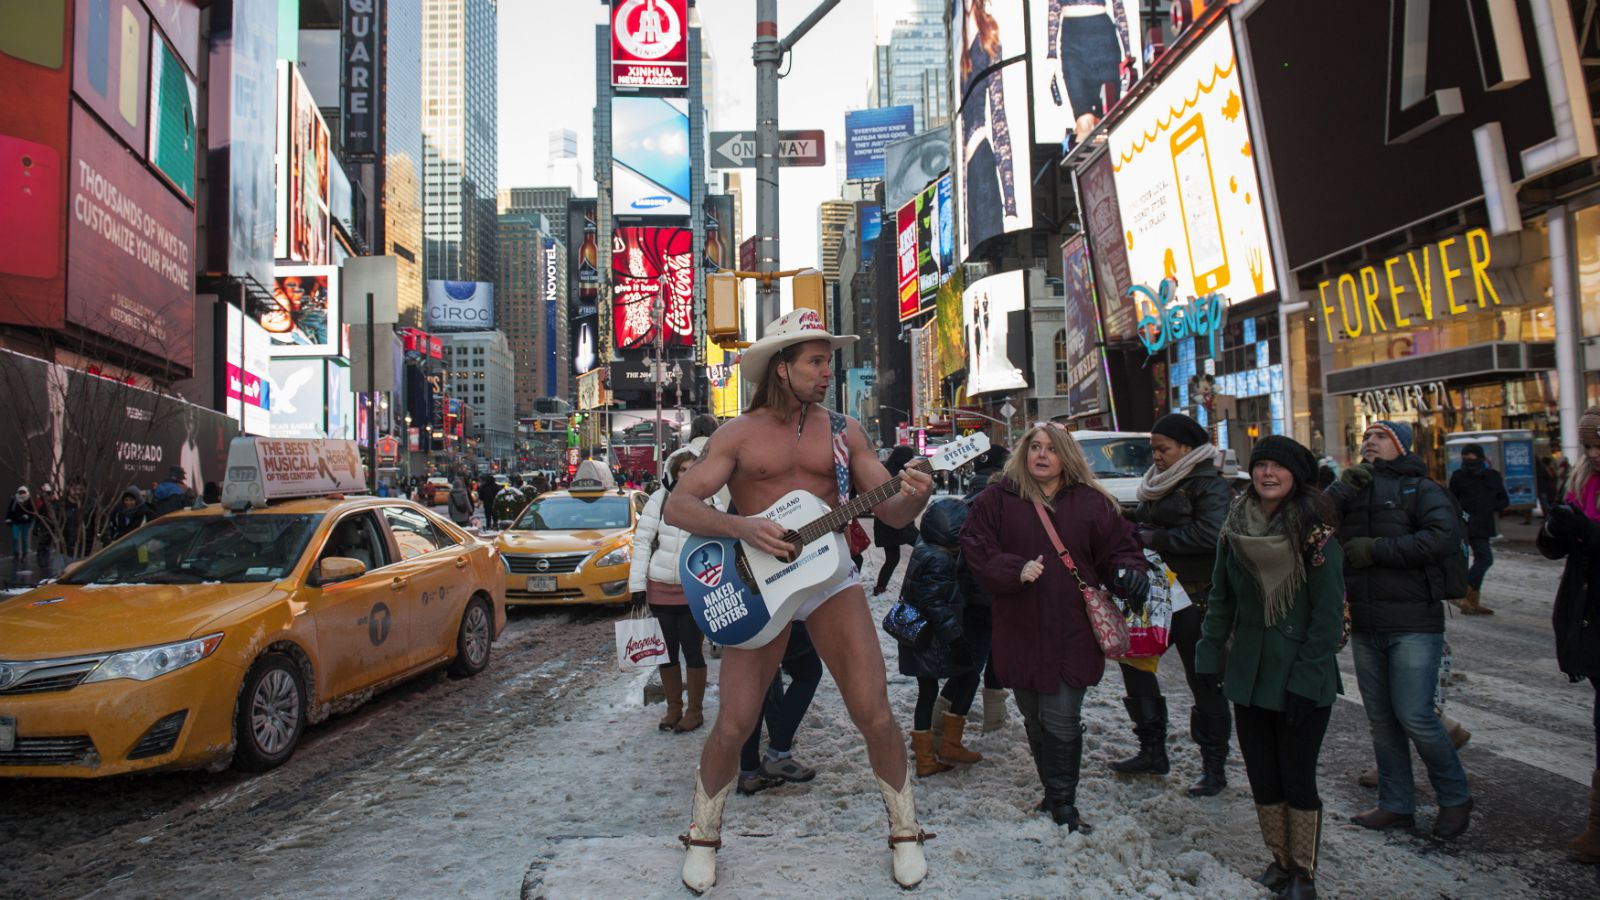 Robert Burck (L), also known as the original 'Naked Cowboy', performs after snowfall on the streets of Times Square, New York January 3, 2014. A heavy snowfall and dangerously low temperatures gripped the northeastern United States on Friday, grounding flights, closing schools and government offices across the region and causing at least three deaths. Burck, who started performing in Times Square in 1998, claims to make up to $150,000 a year in tips alone.